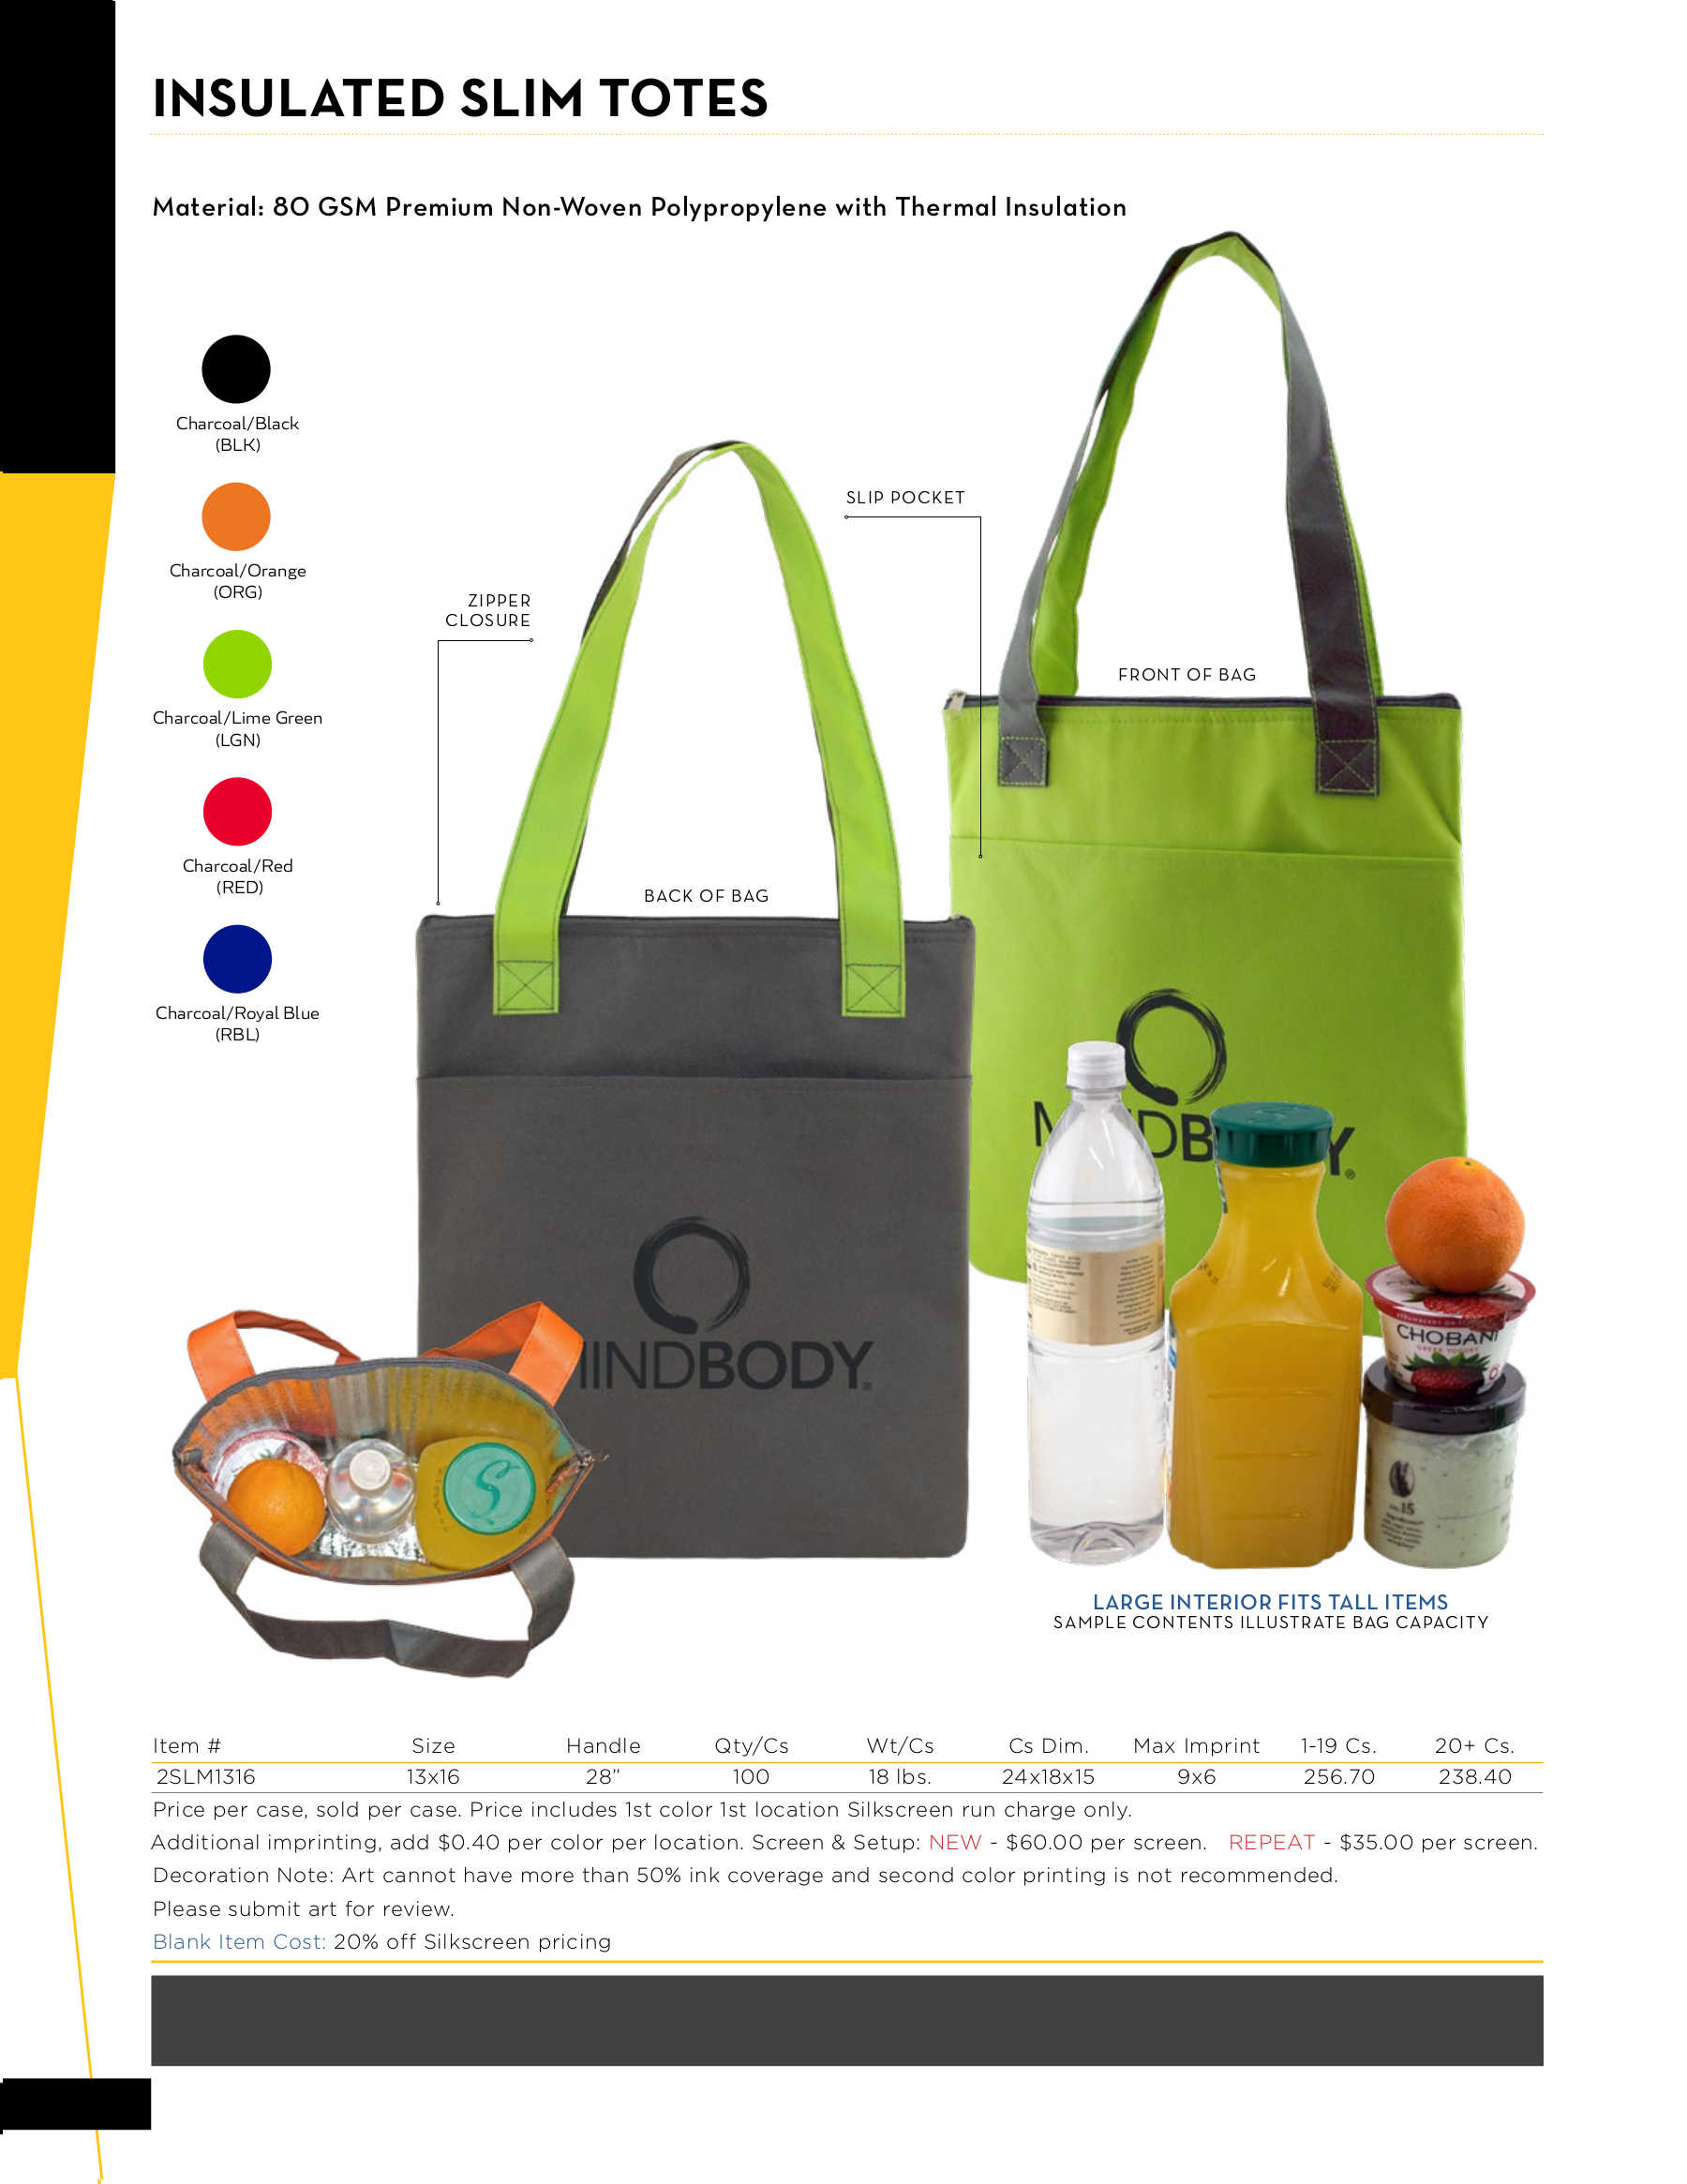 Insulated Slim Totes